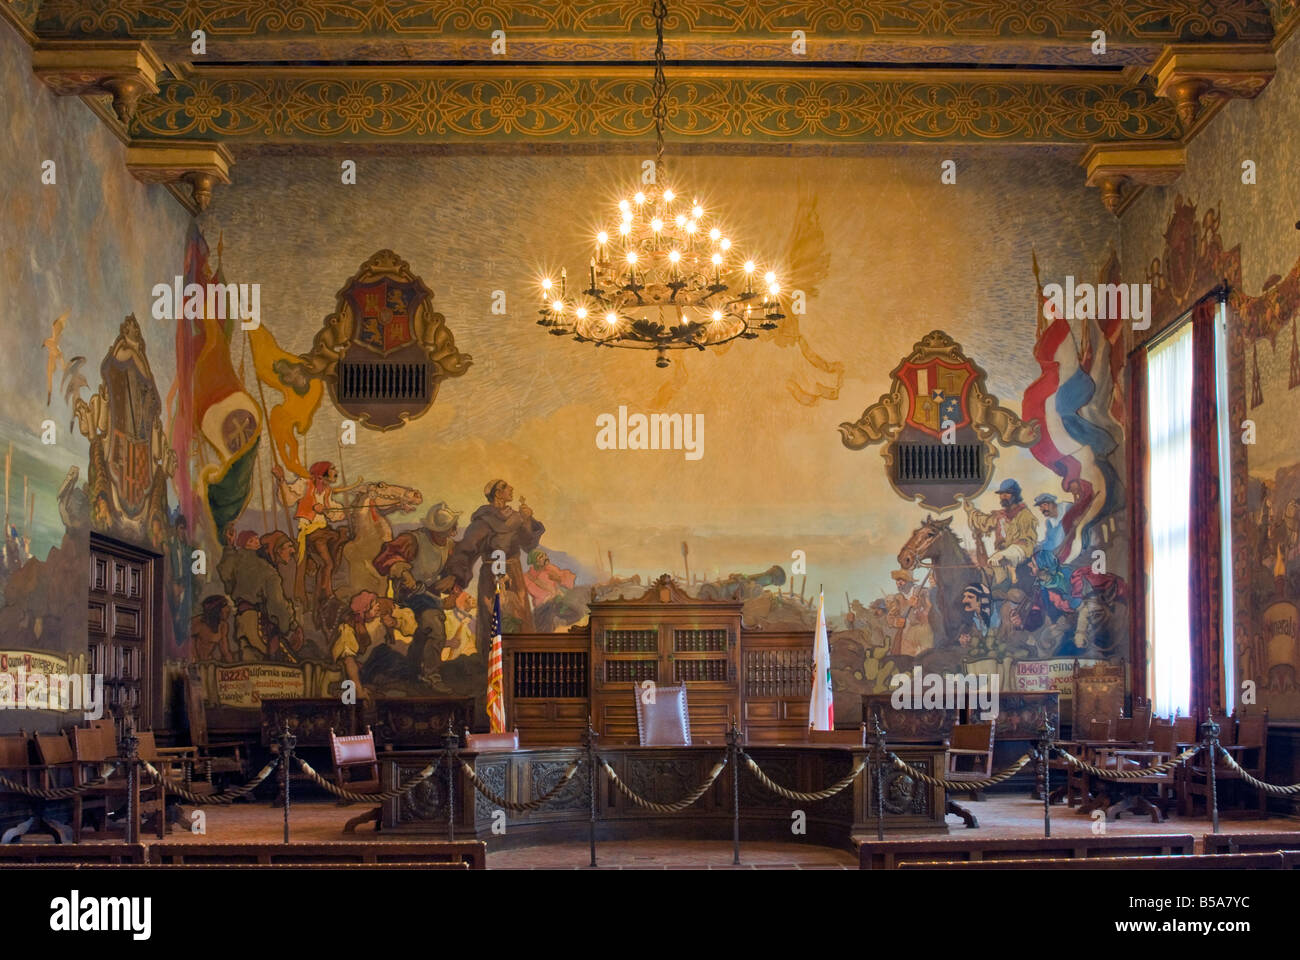 Wall painting at mural room county courthouse santa barbara stock photo royalty free image for Mural room santa barbara